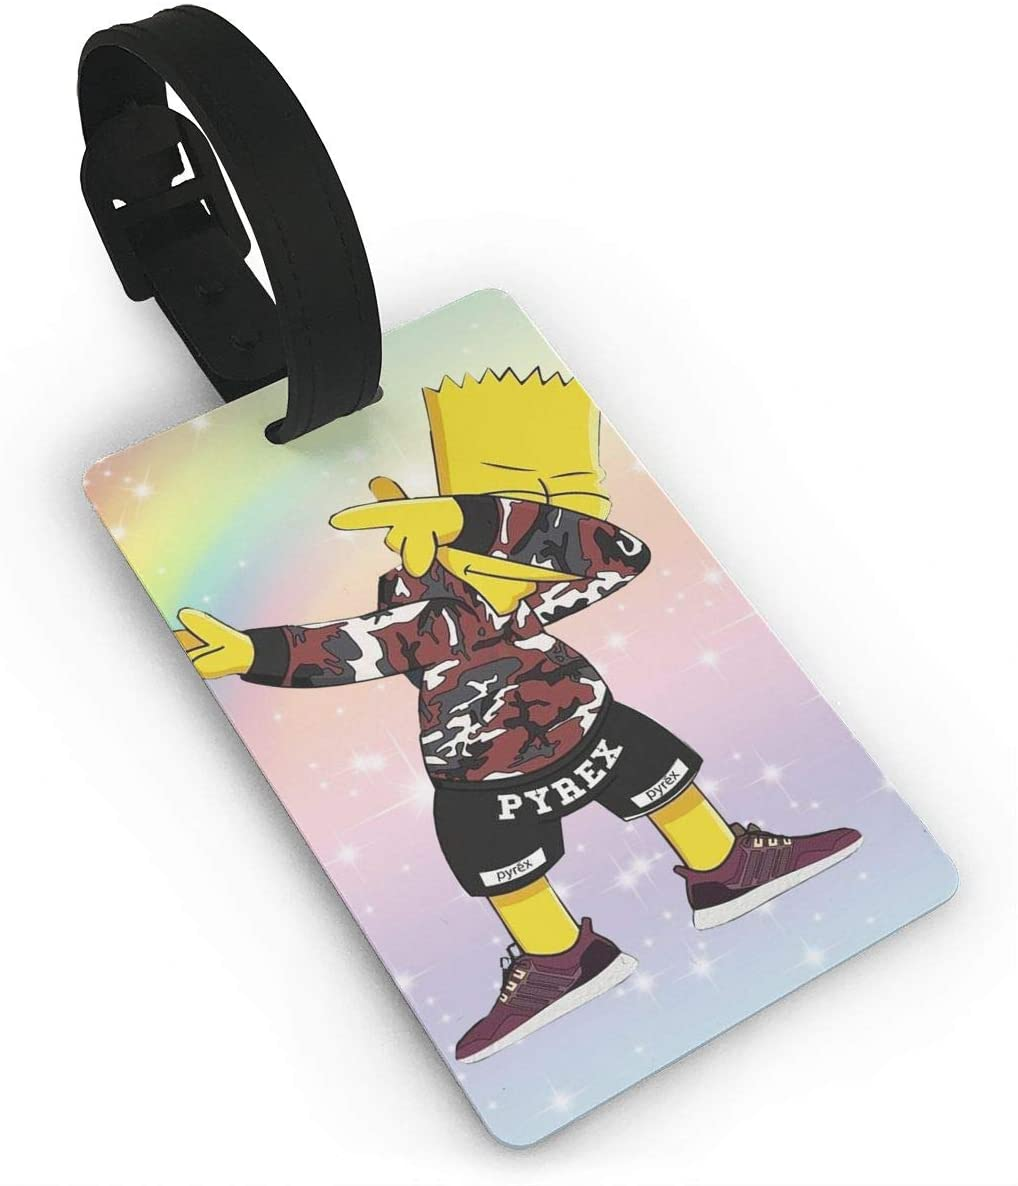 Hhill Swater Bart Simpson Luggage Tags for Suitcases, Travel Id Identification Labels Set for Bags & Baggage Pack